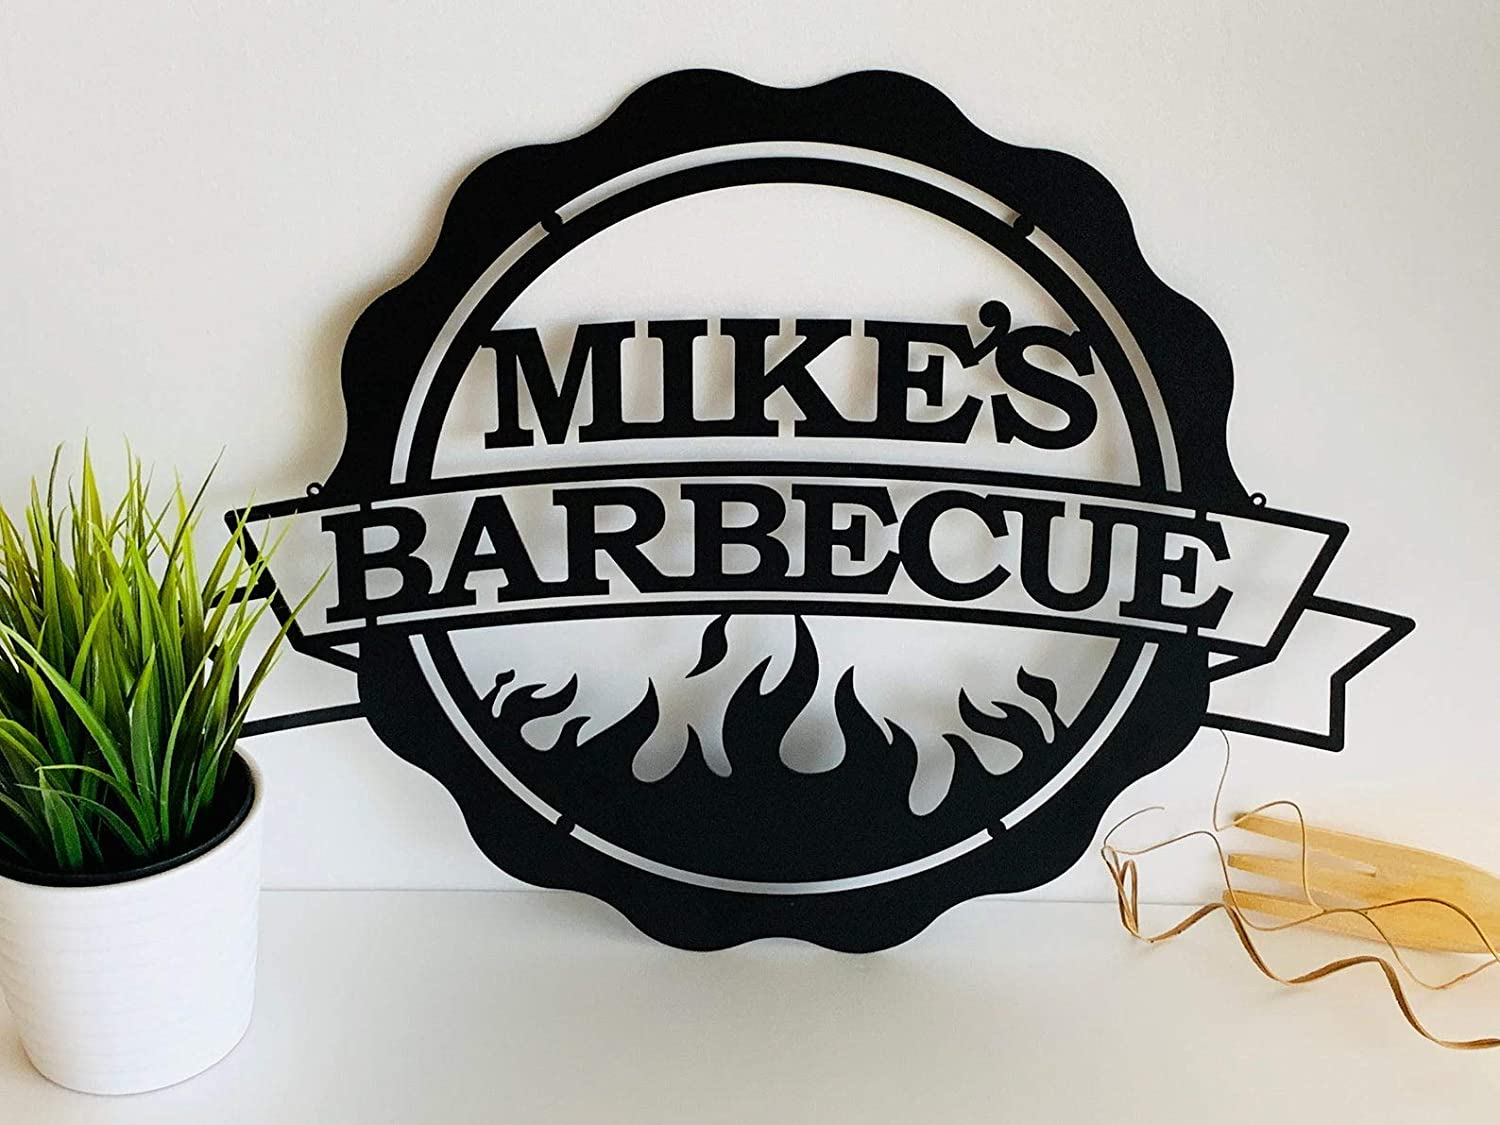 Personalized BBQ Grill Name Sign Dad's BBQ Custom Metal Sign Home Decoration Wall Art Decor Barbecue Garden Bar Outdoor Housewarming Birthday Gift Metal Sign Patio Decor Wall Hanging Grandpa Papa Gift